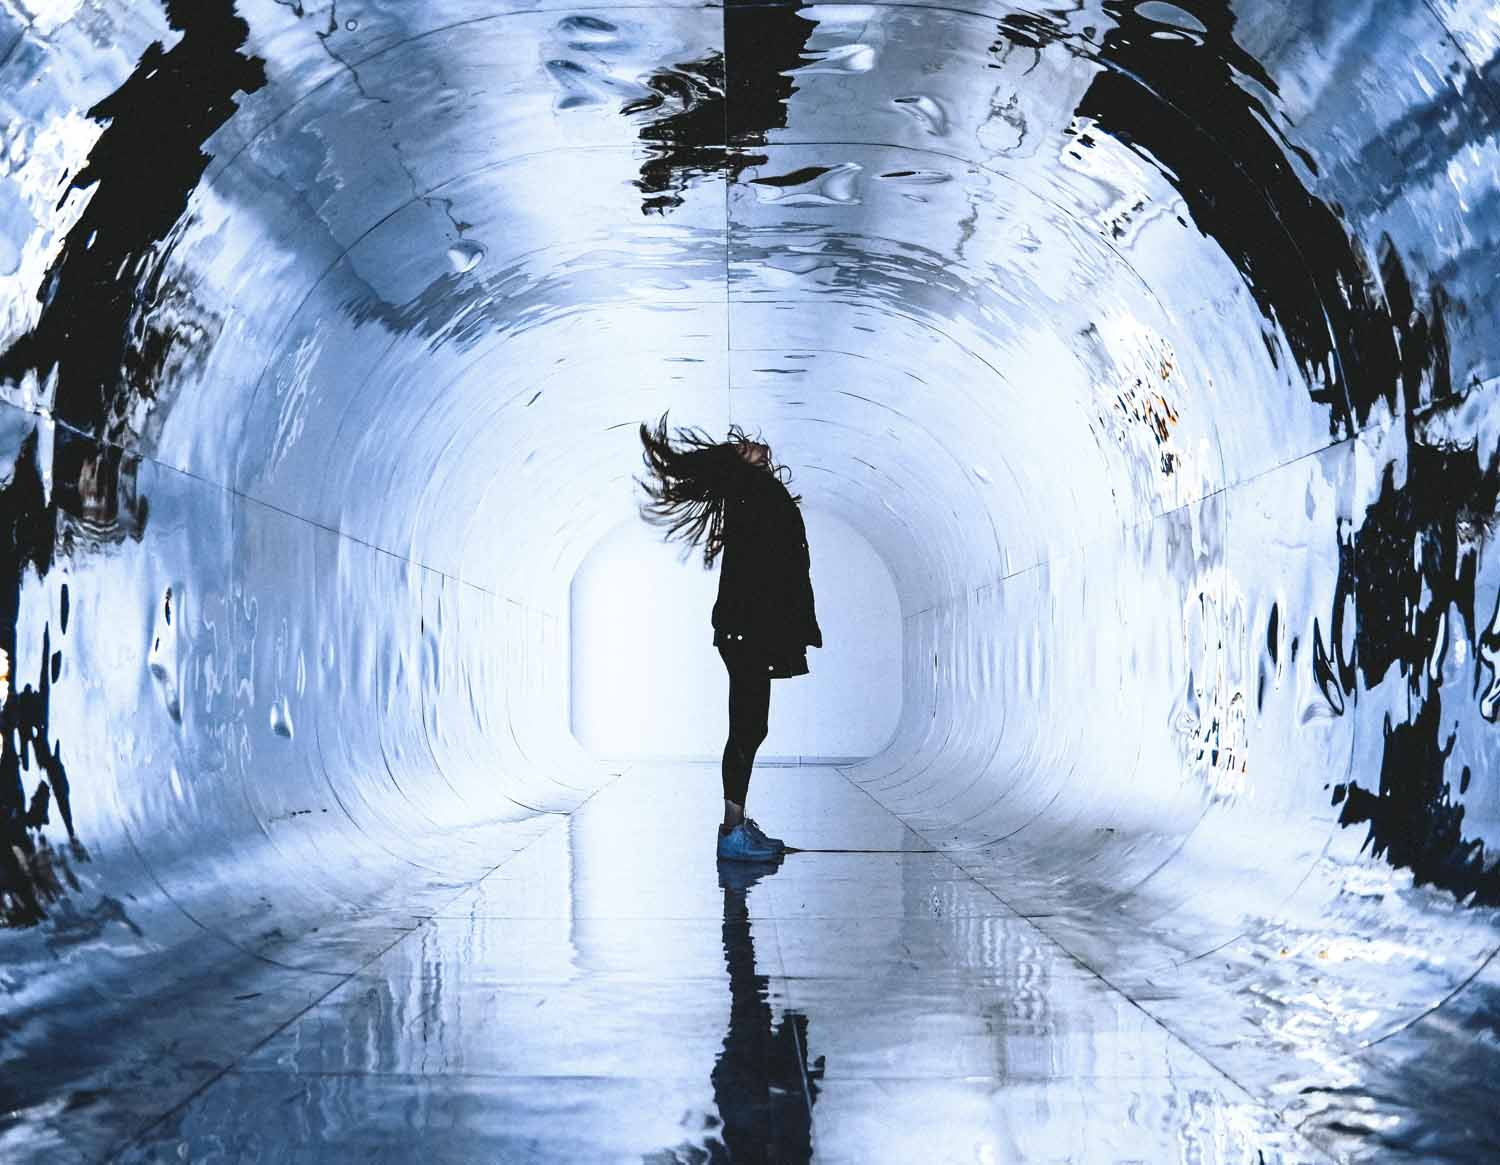 person in reflective tunnel